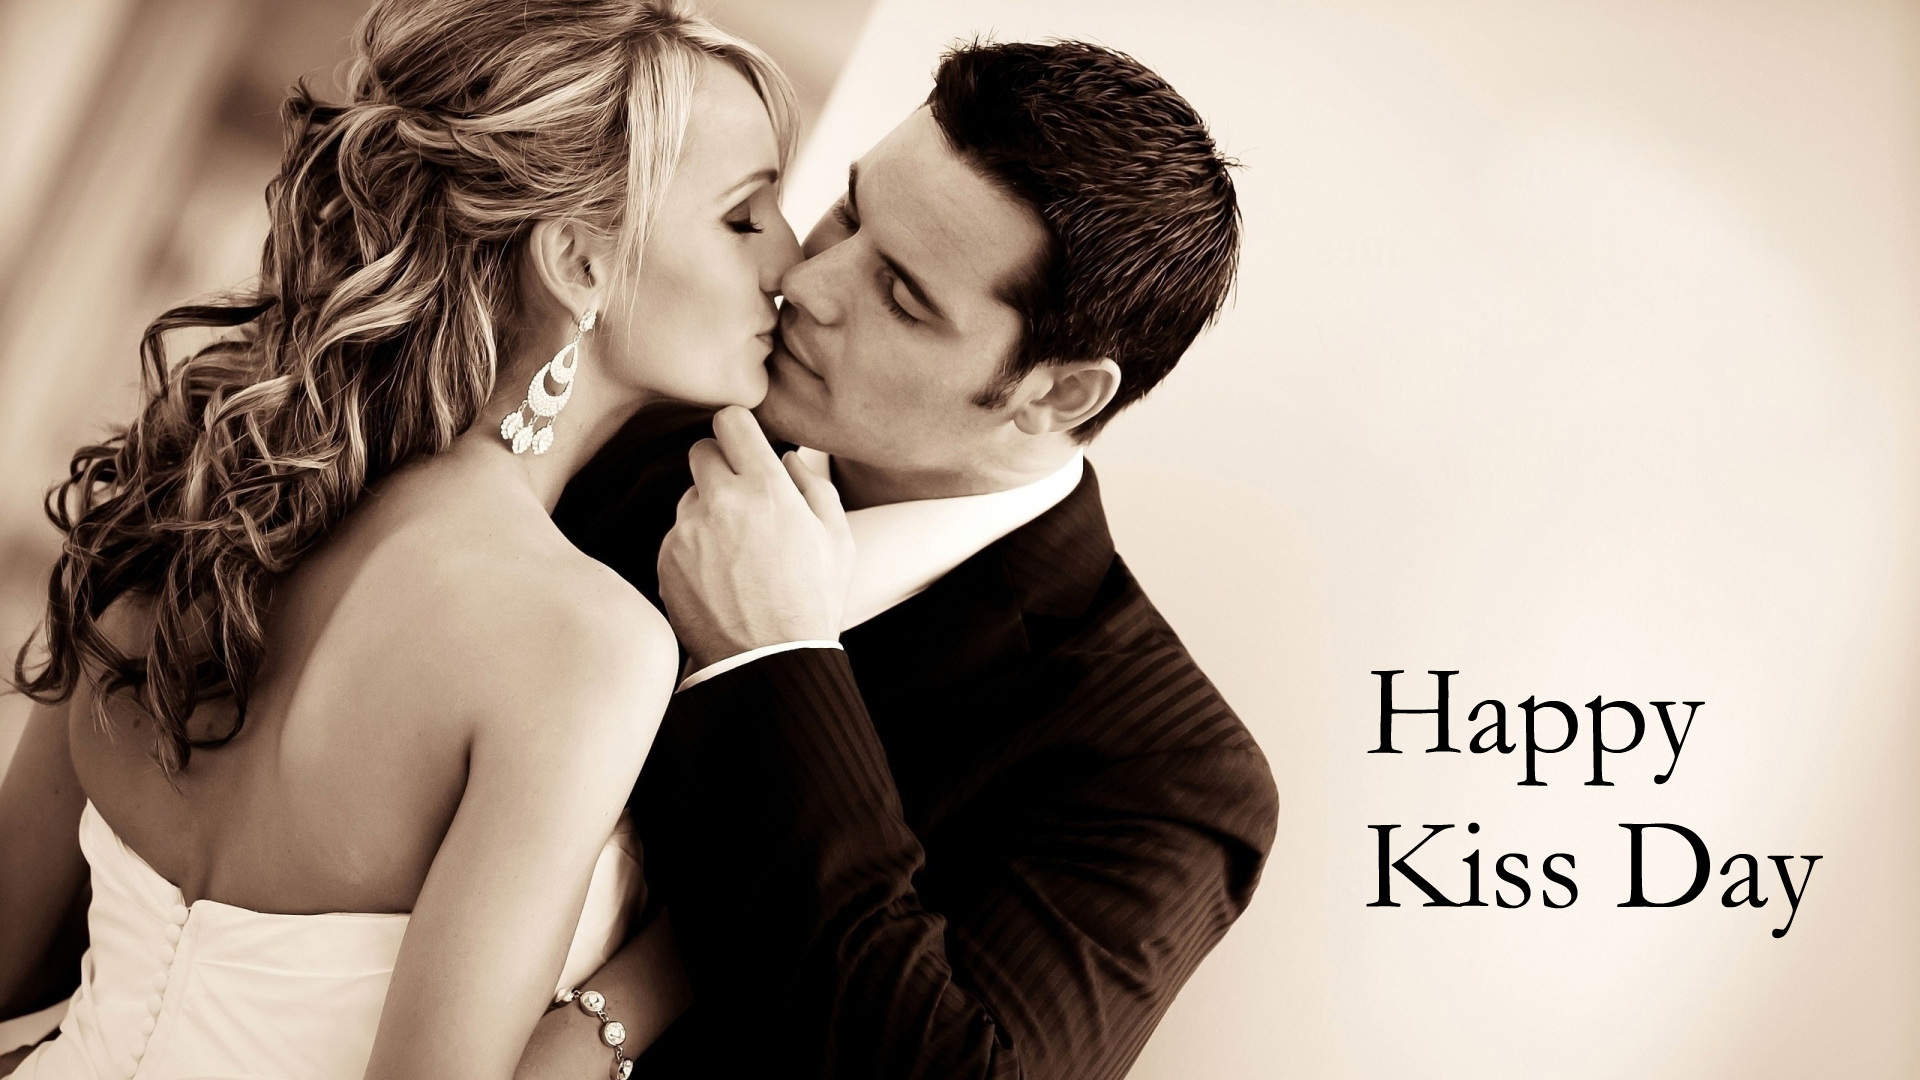 Happy-kiss-day-wallpaper